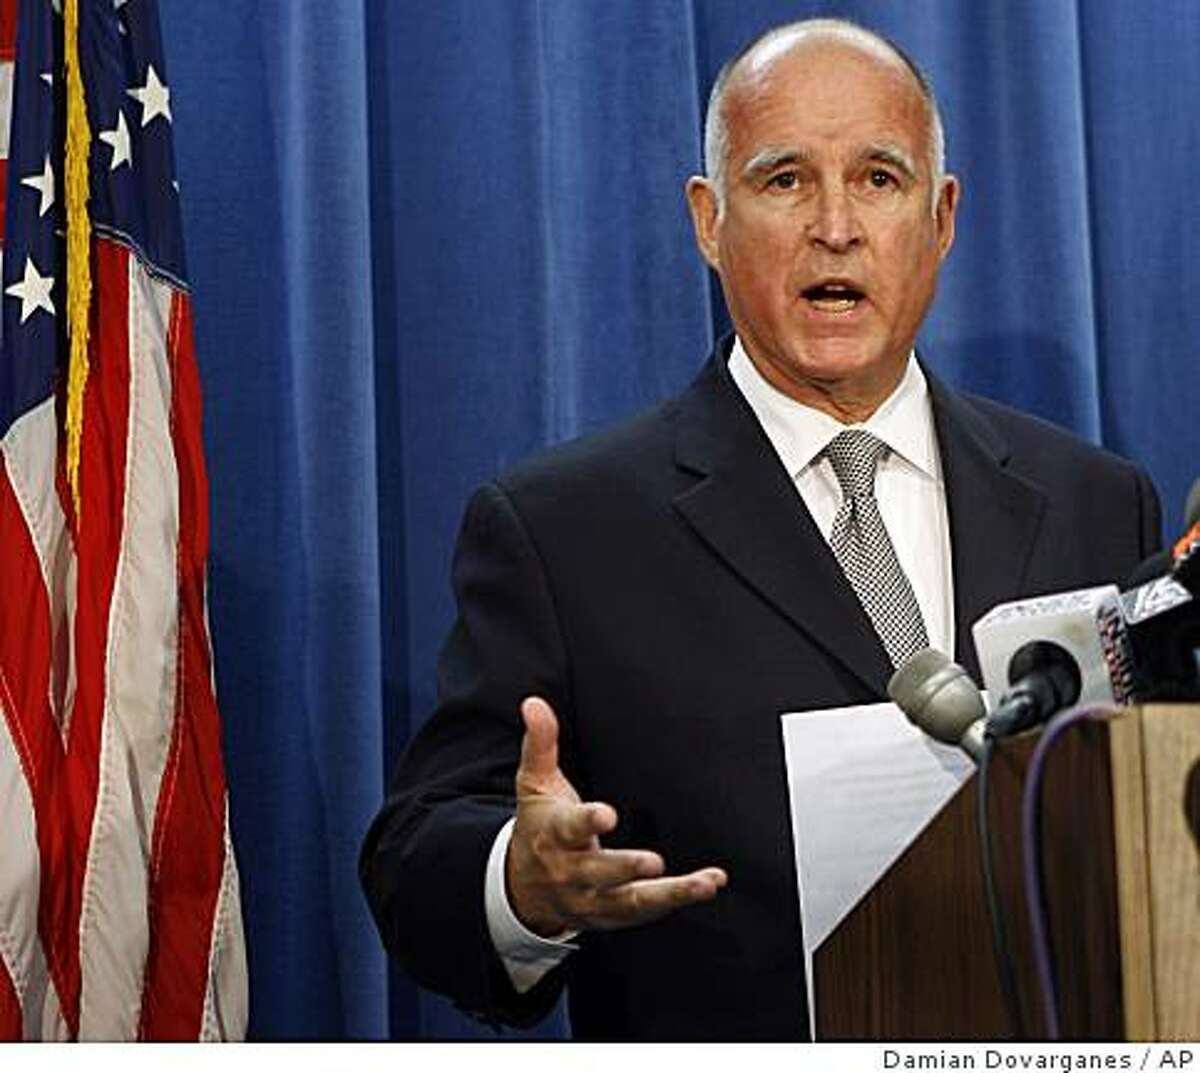 California Attorney General Jerry Brown comments on the death of Anna Nicole Smith during a news conference in Los Angeles Friday, Oct. 12, 2007. Authorities investigating the death of Anna Nicole Smith raided six locations Friday, including the offices and residences of two doctors, a spokeswoman for the Los Angeles County district attorney's office said. (AP Photo/Damian Dovarganes)